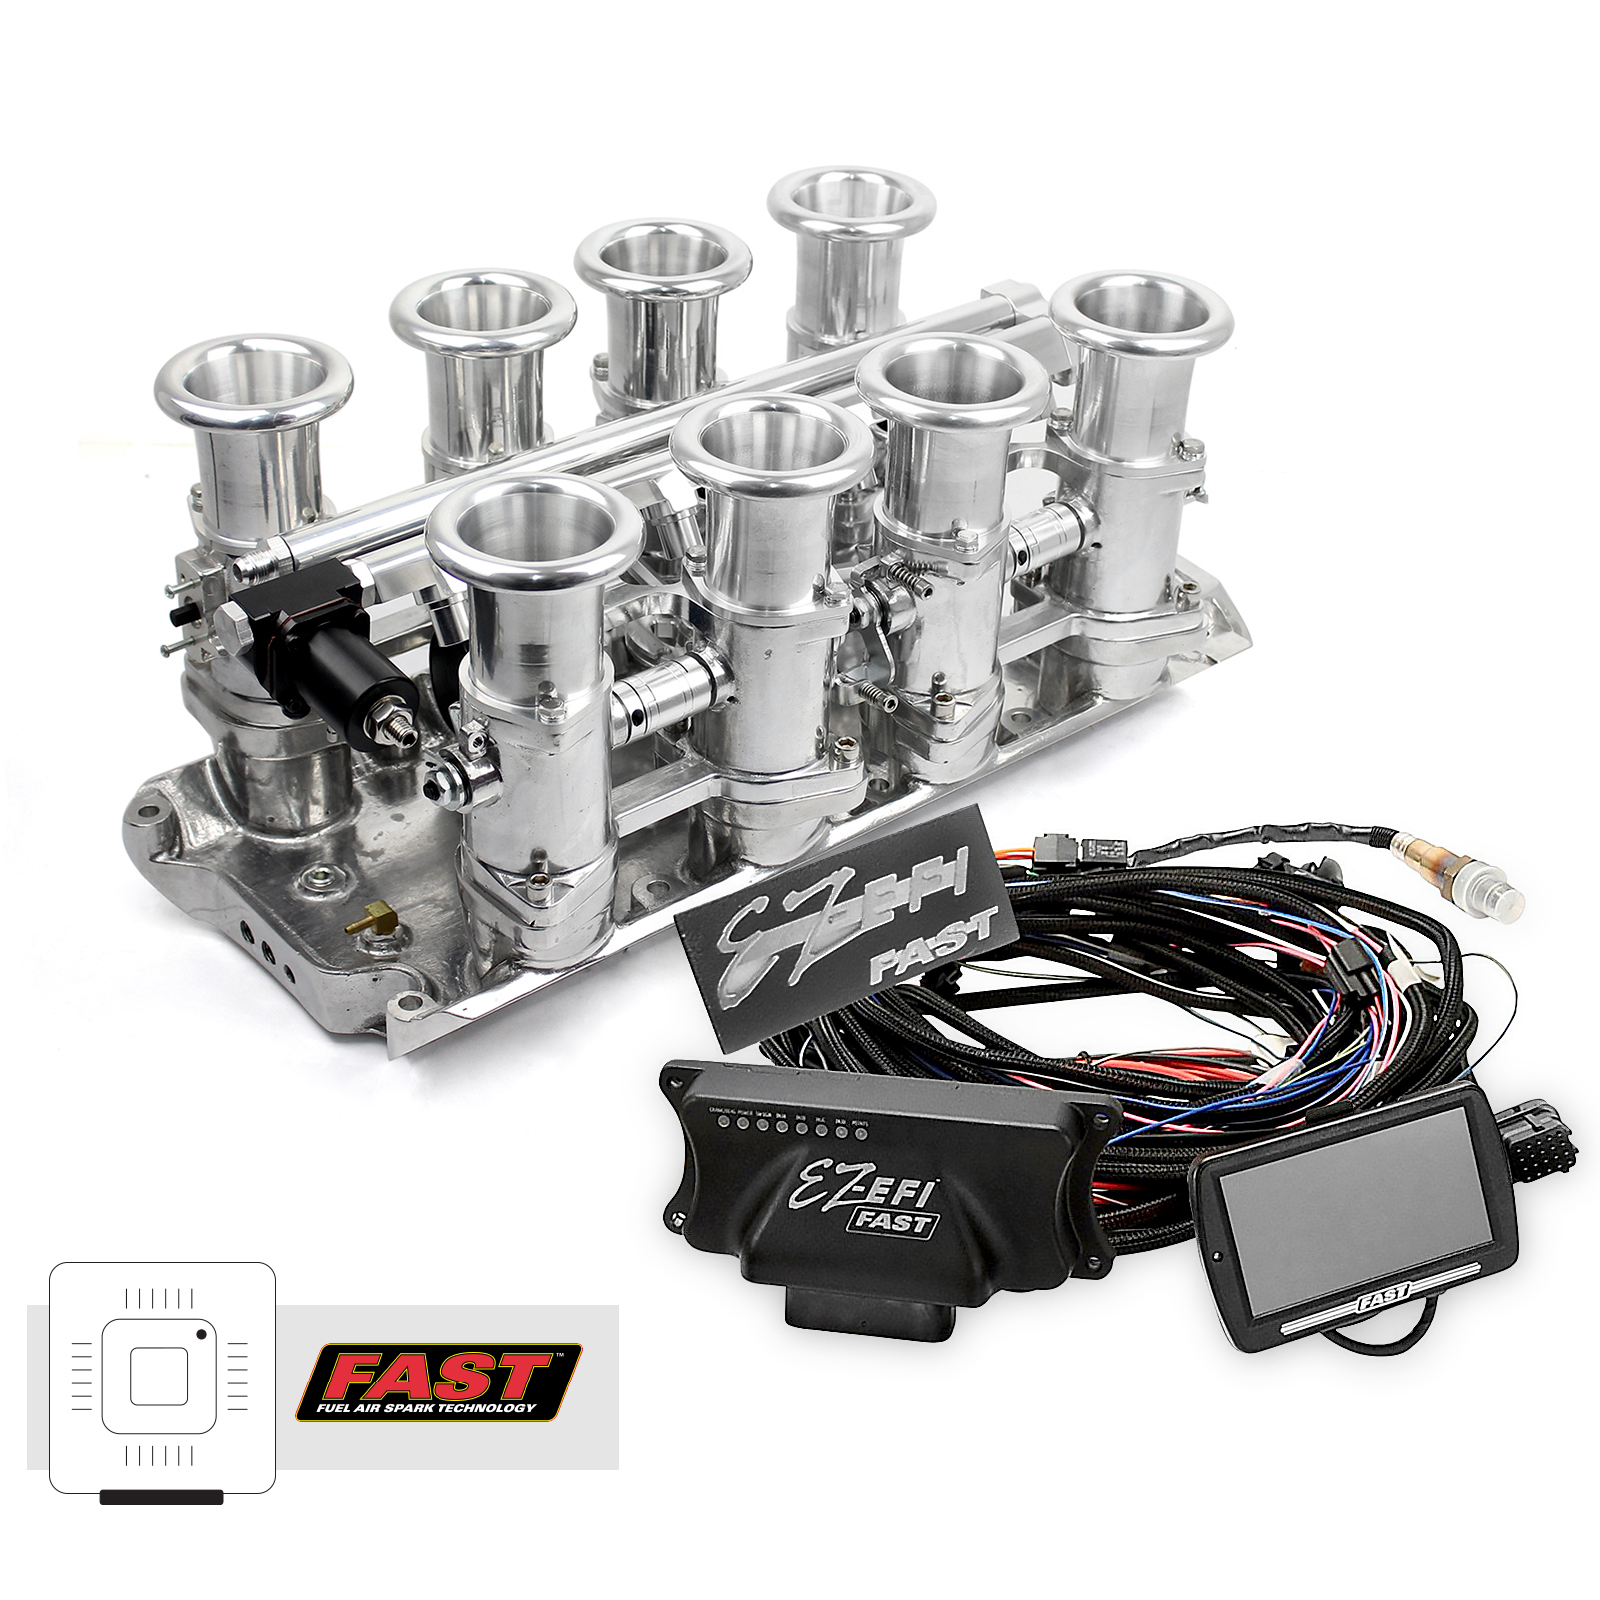 Ford SB 260 289 302 Windsor Downdraft + FAST EZ-EFI 2.0 Fuel Injection System